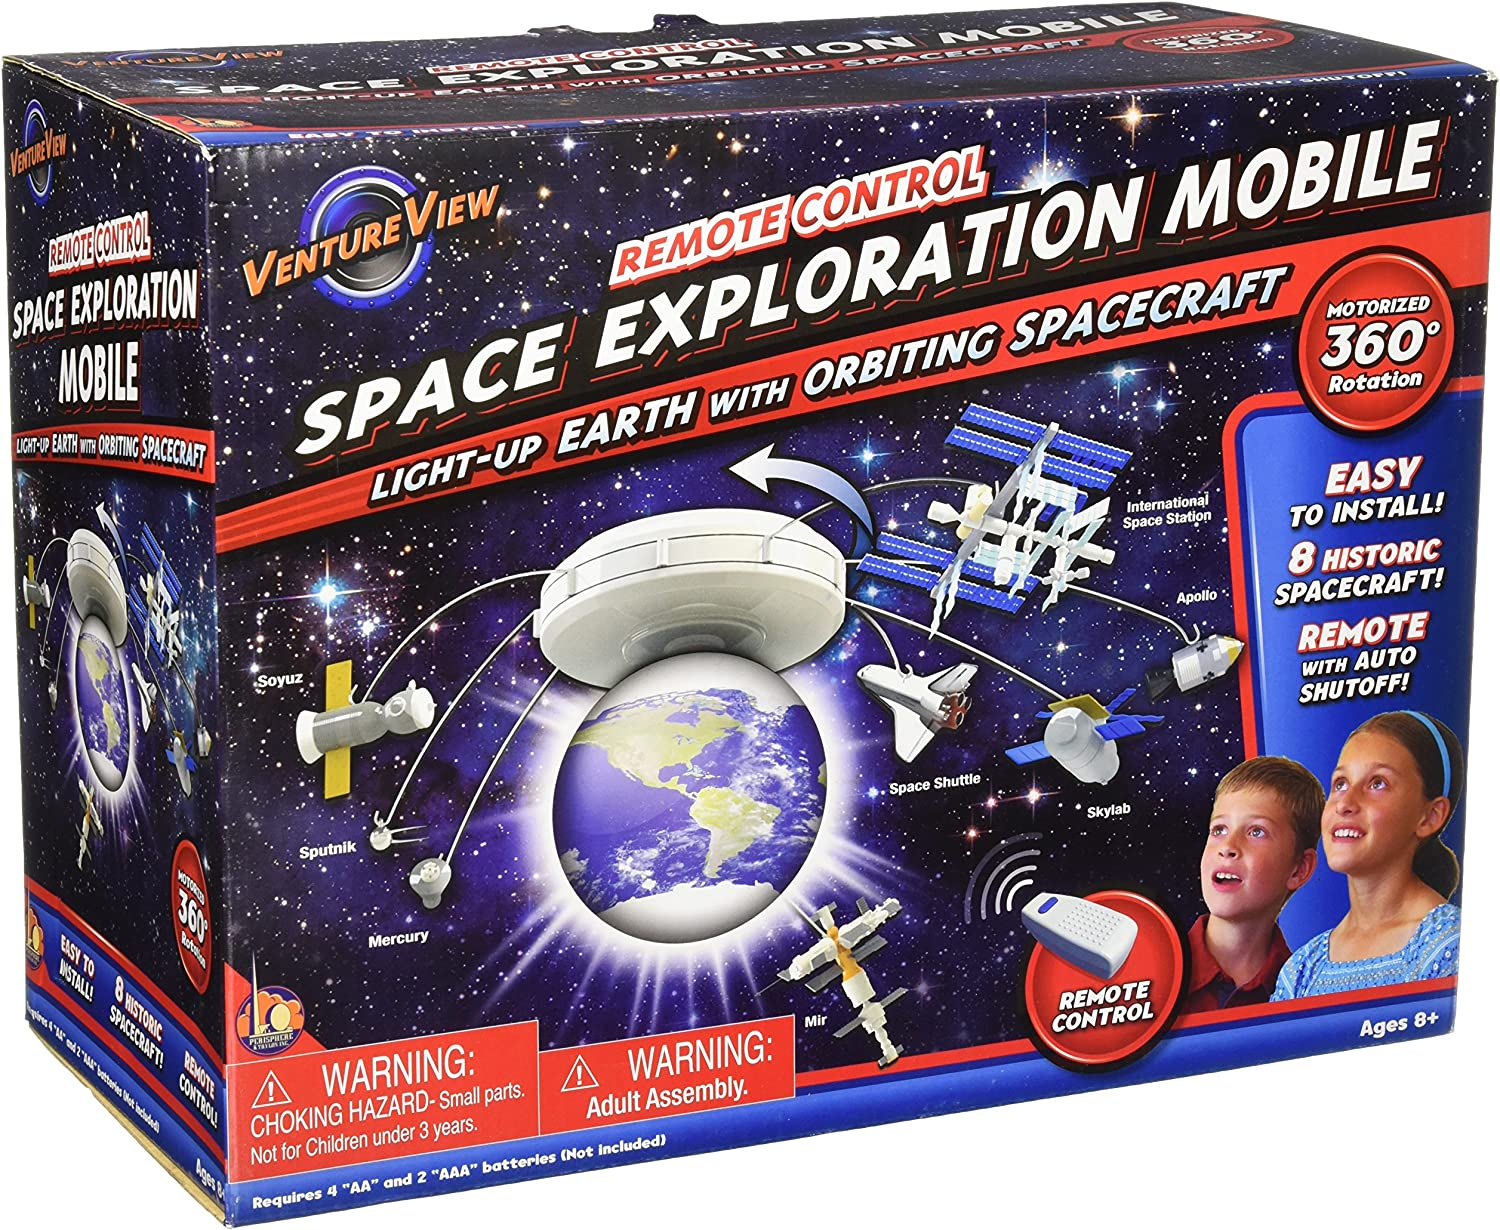 Perisphere And Trylon Games Space Exploration Mobile